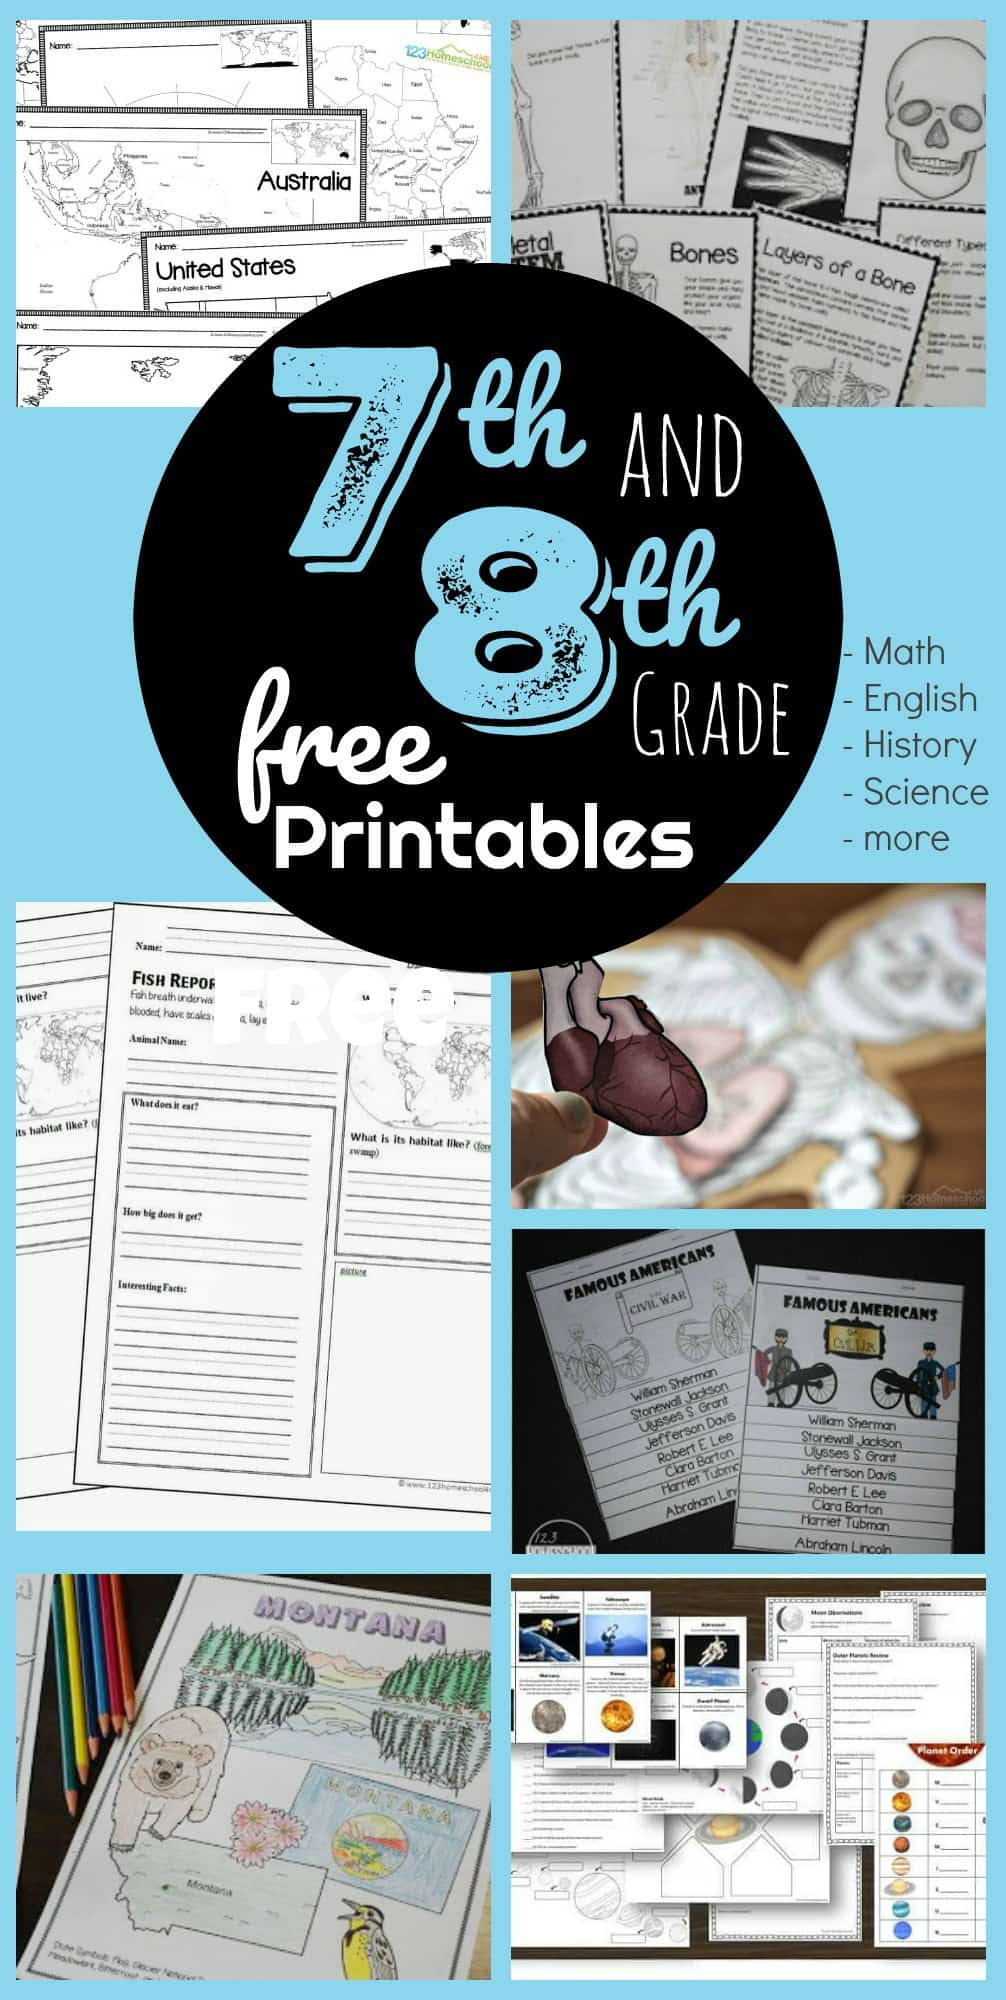 7th Grade Texas History Worksheets Basic Word Problems World War 2 Worksheets Language